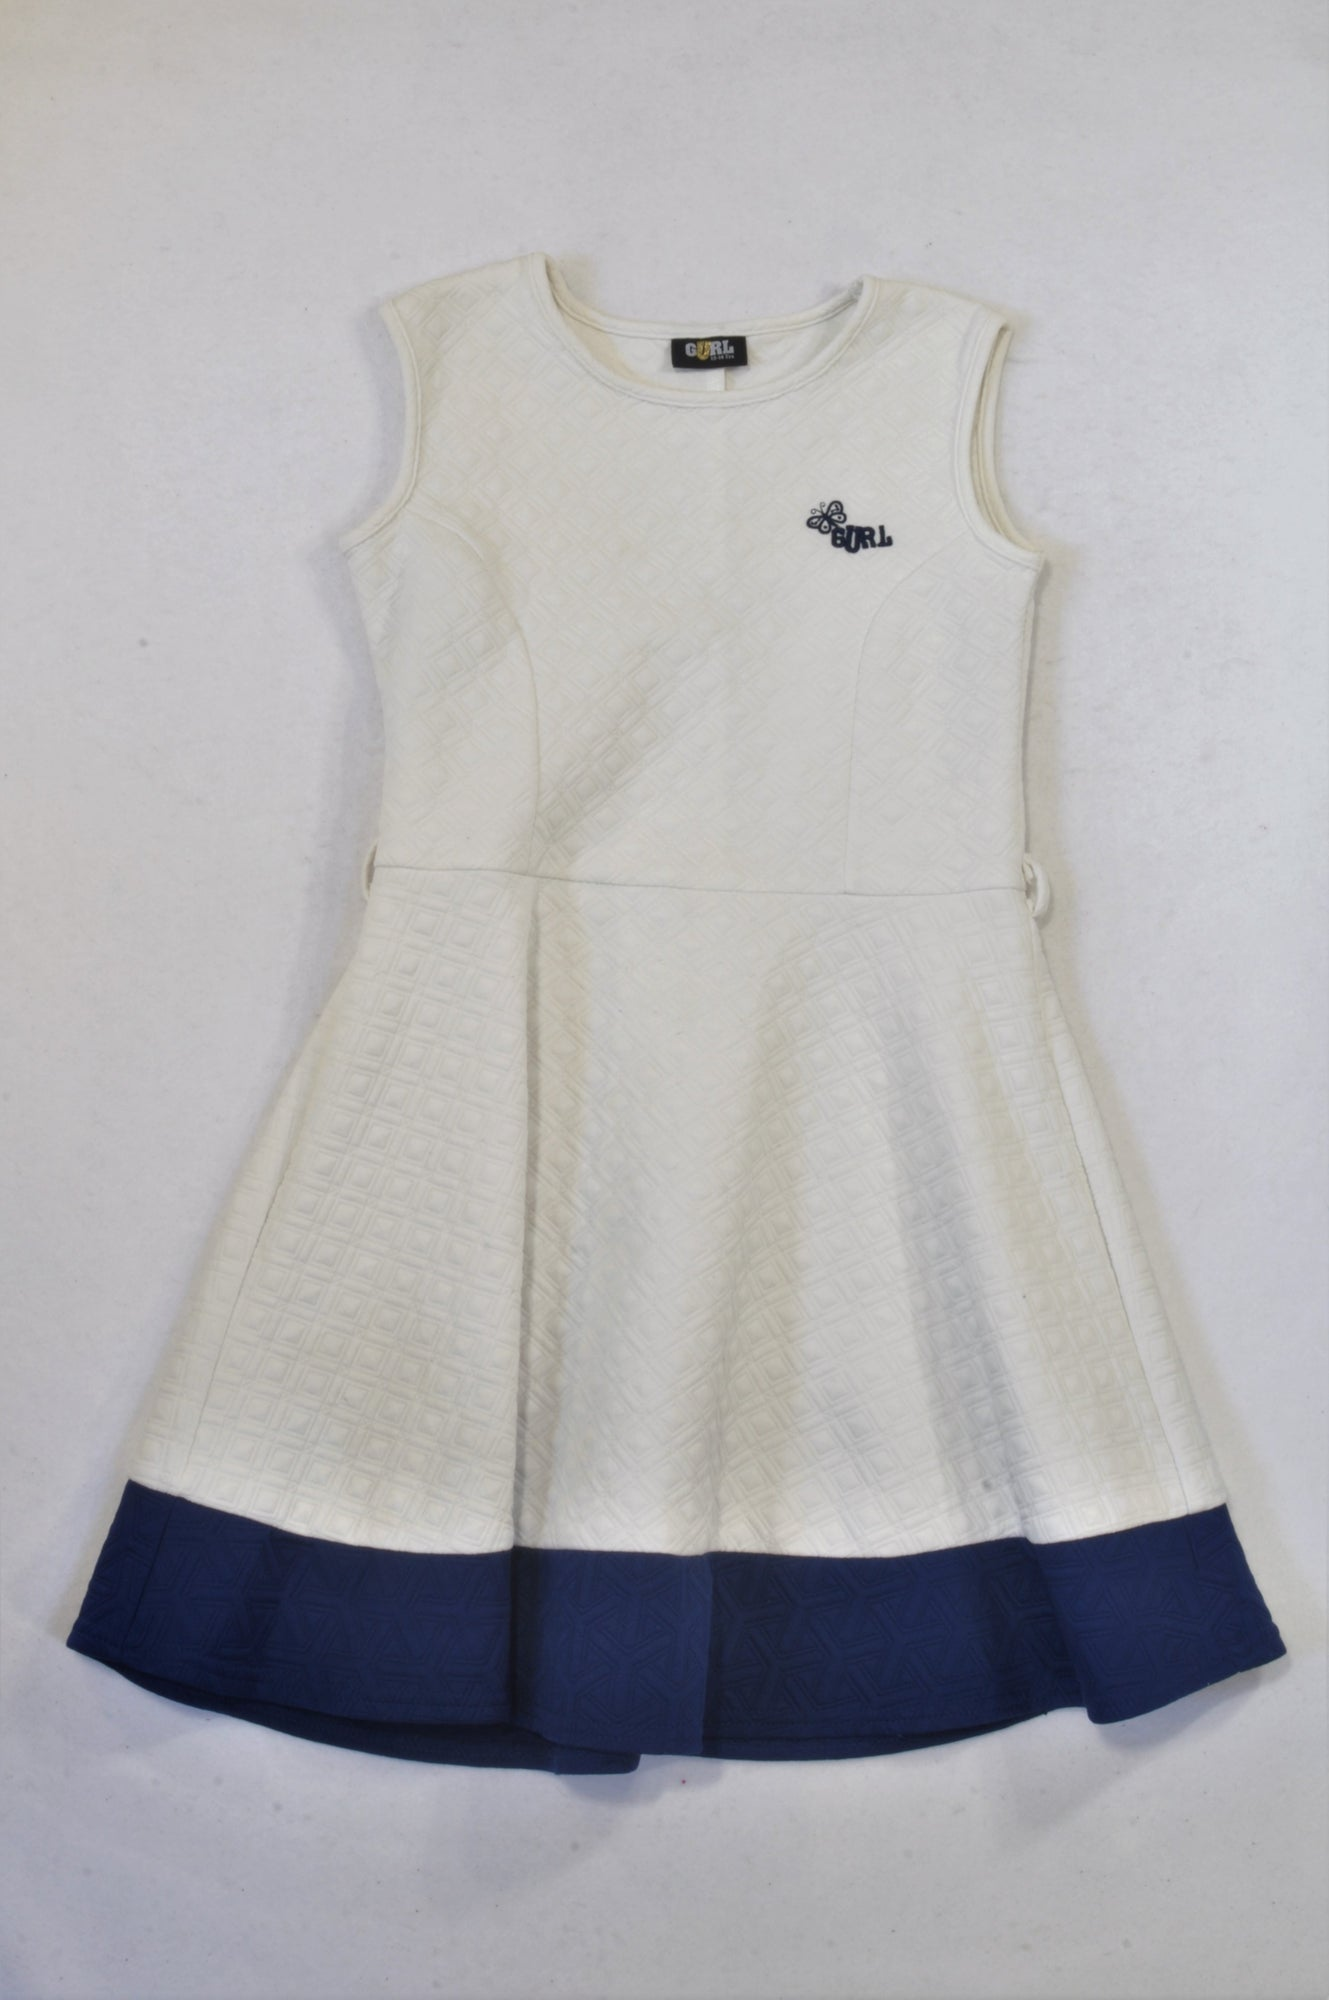 Gurl White & Blue Textured Dress Girls 13-14 years